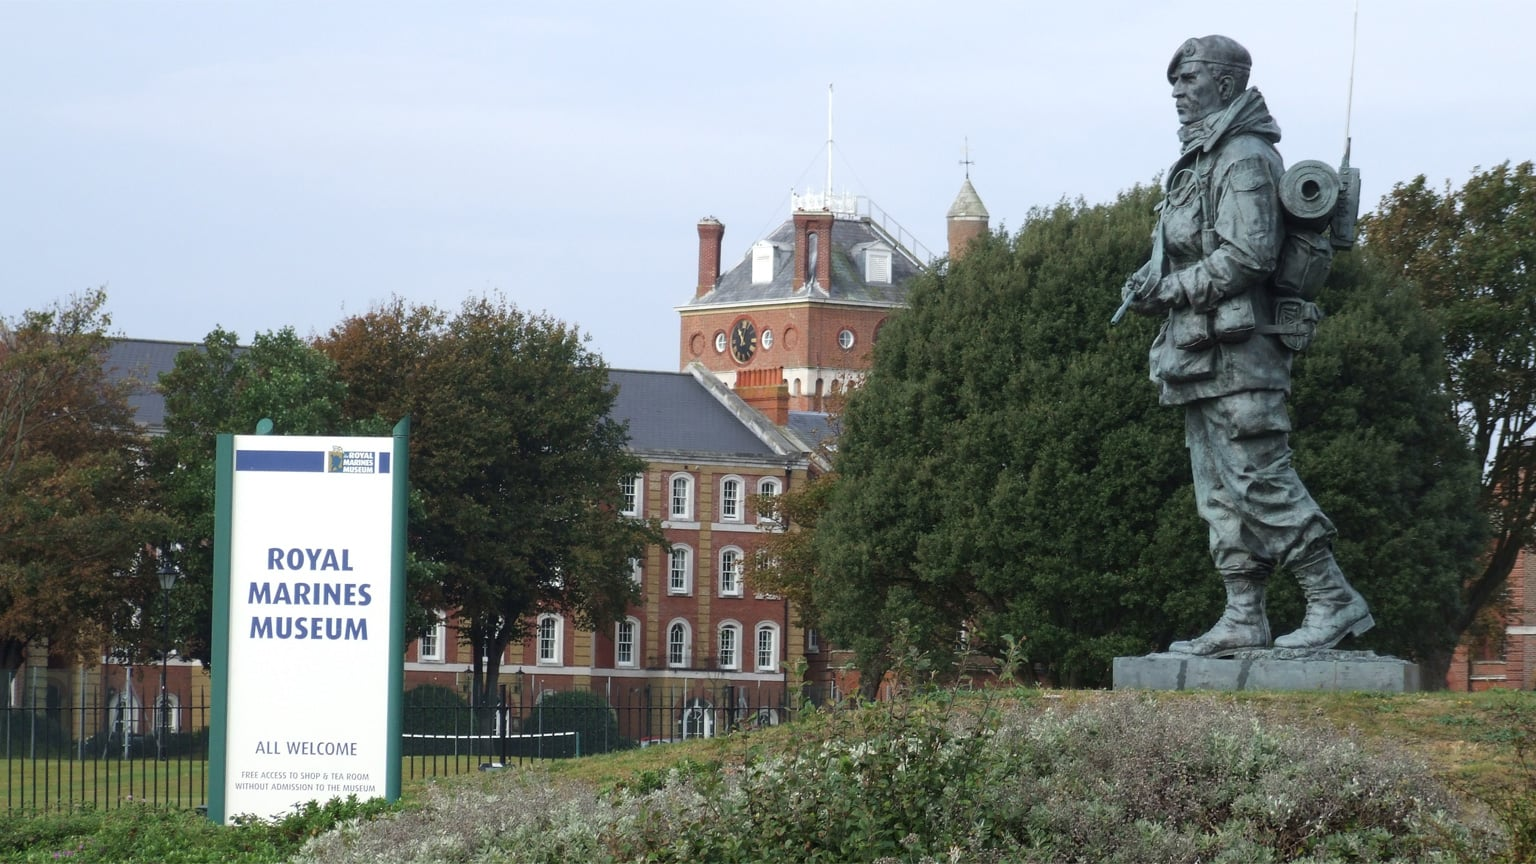 6. Royal Marines Museum, Southsea - Free entry and exhibitions with National Art Pass